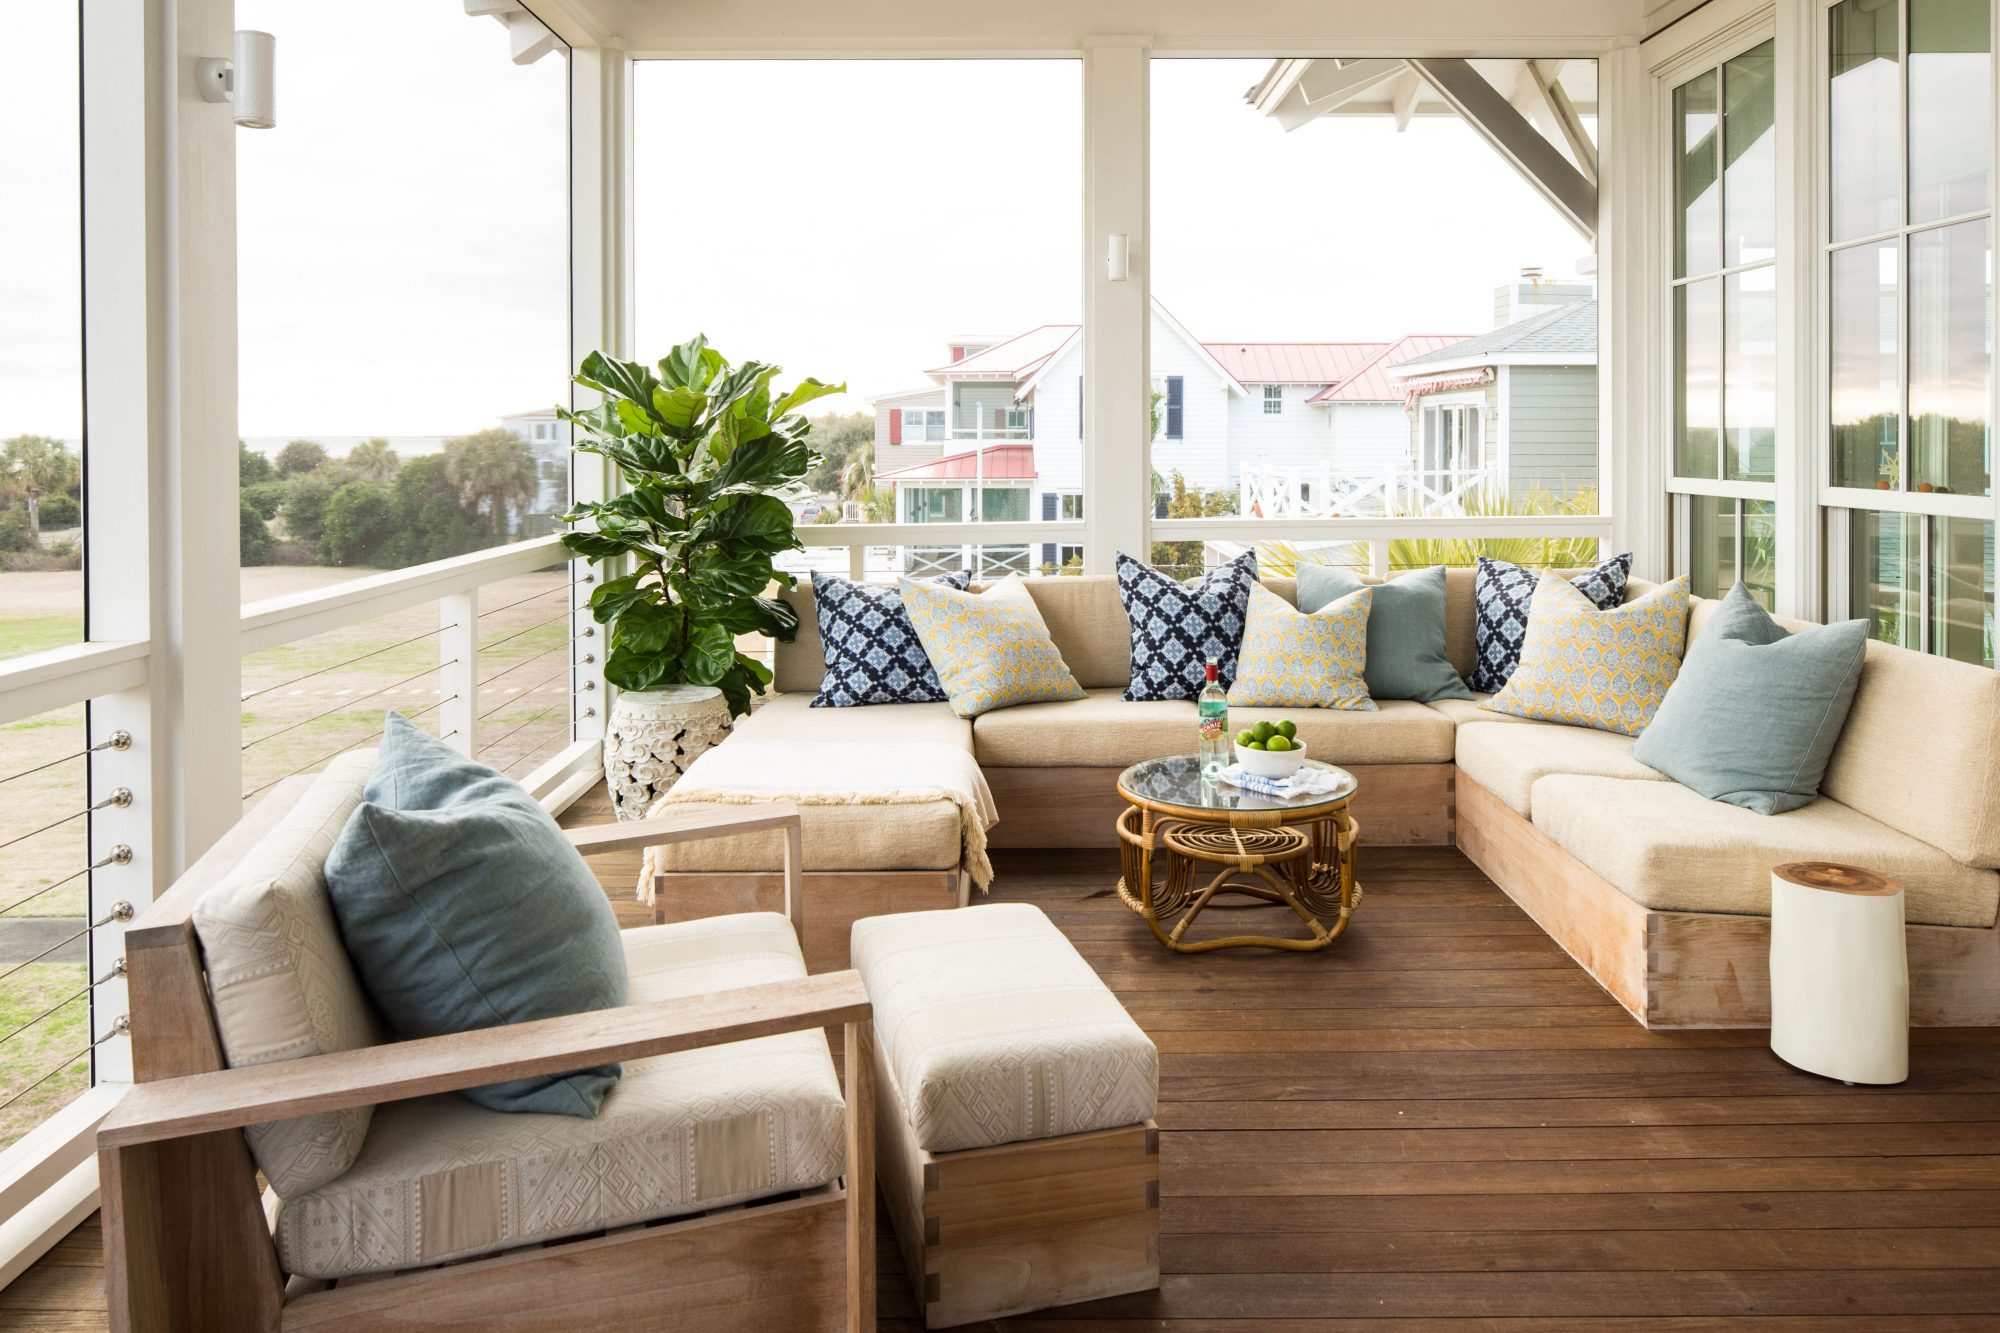 This Sullivan's Island screened porch is a favorite perch for watching boats pass in and out of nearby Charleston Harbor. A sectional sofa suited for the outdoors offers plenty of room for lounging and entertaining friends.